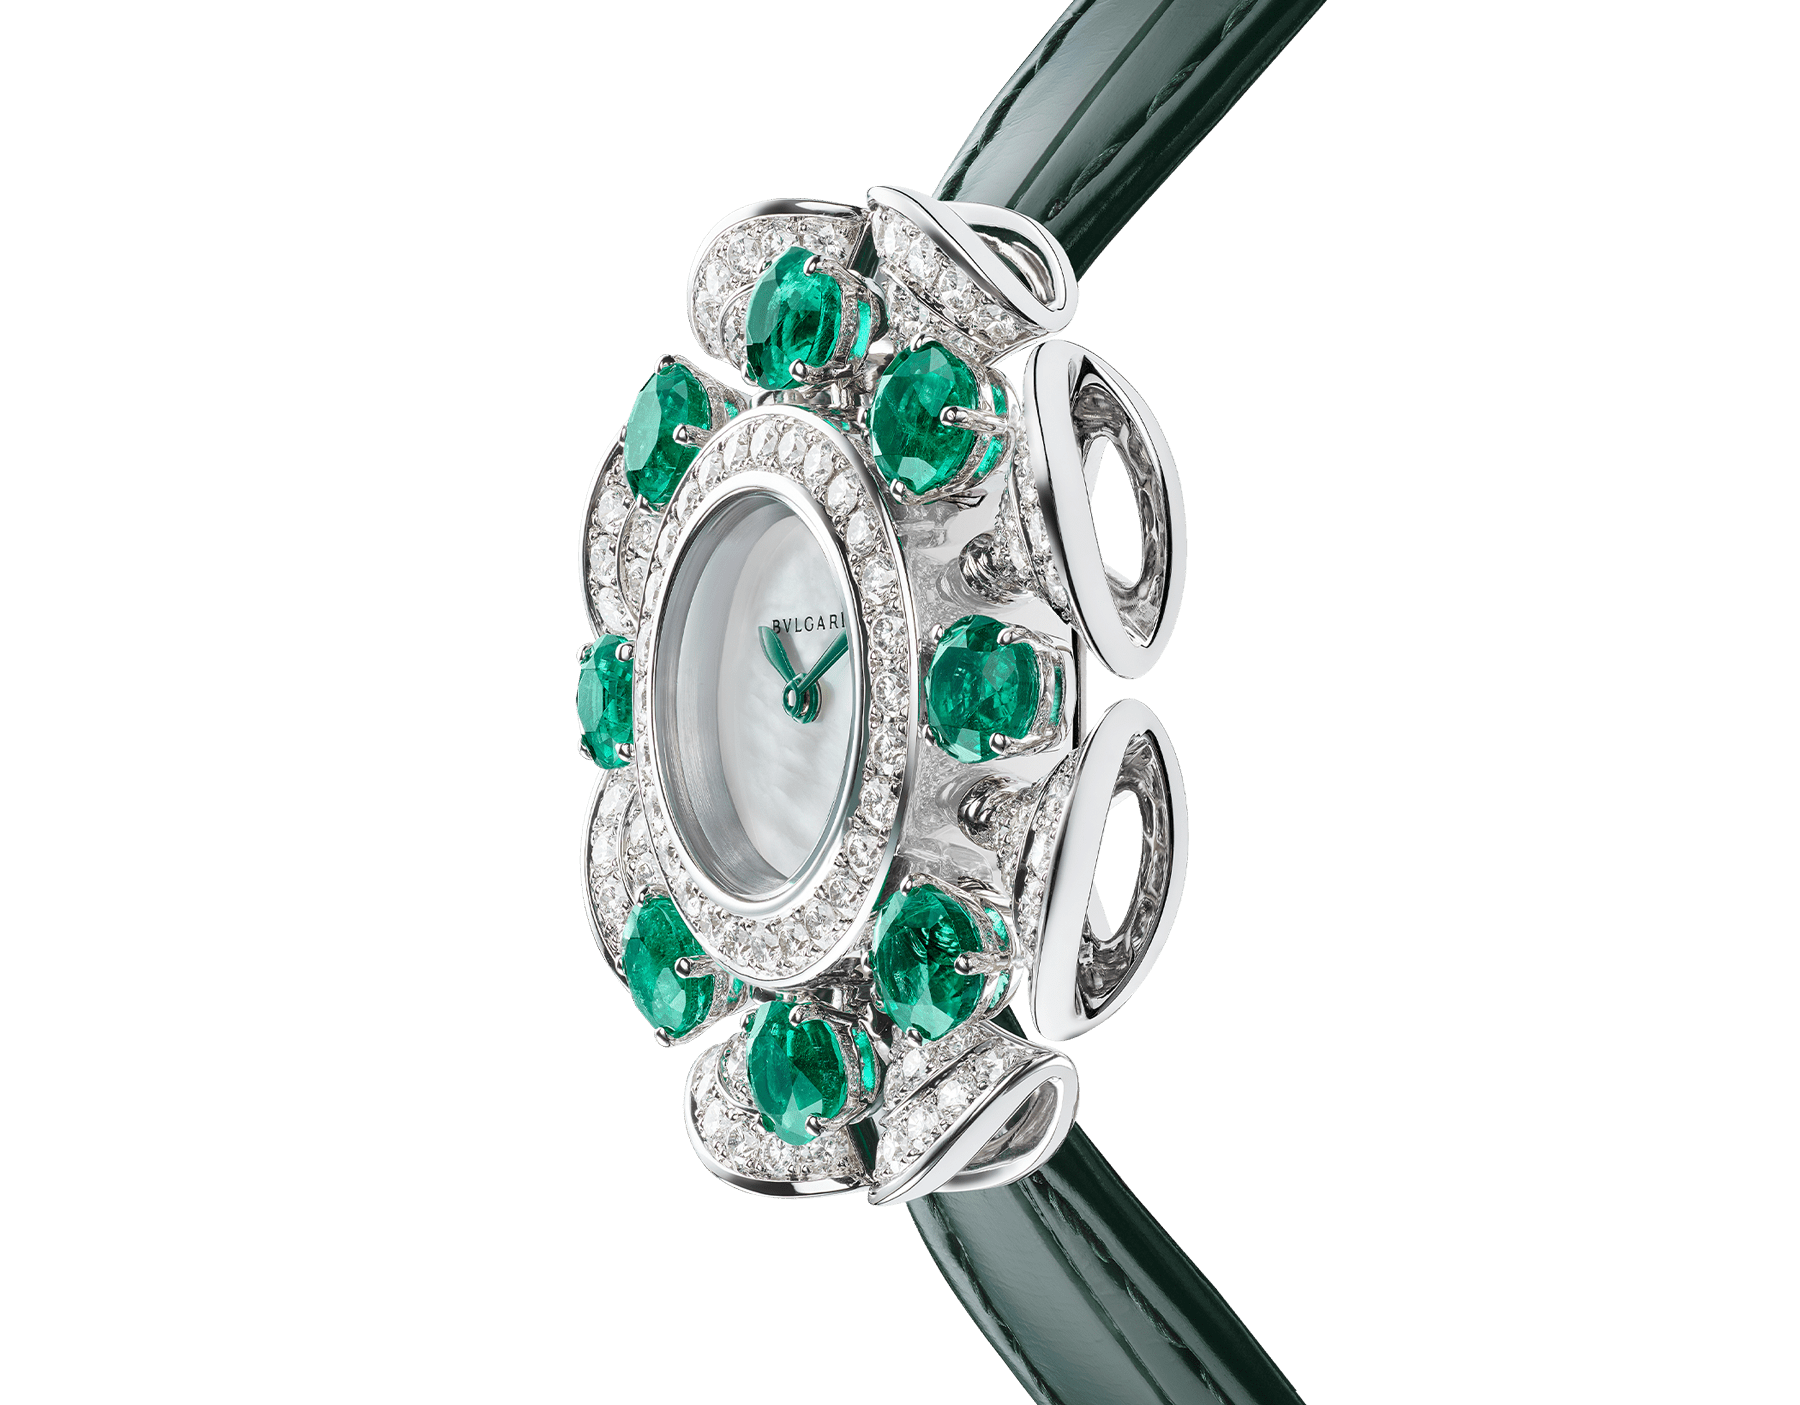 DIVAS' DREAM Divissima High Jewellery watch with 18 kt white gold case and mobile petals set with 8 brilliant-cut emeralds and round brilliant-cut diamonds, mother-of-pearl dial, and green alligator bracelet. Water-resistant up to 30 metres 103505 image 2